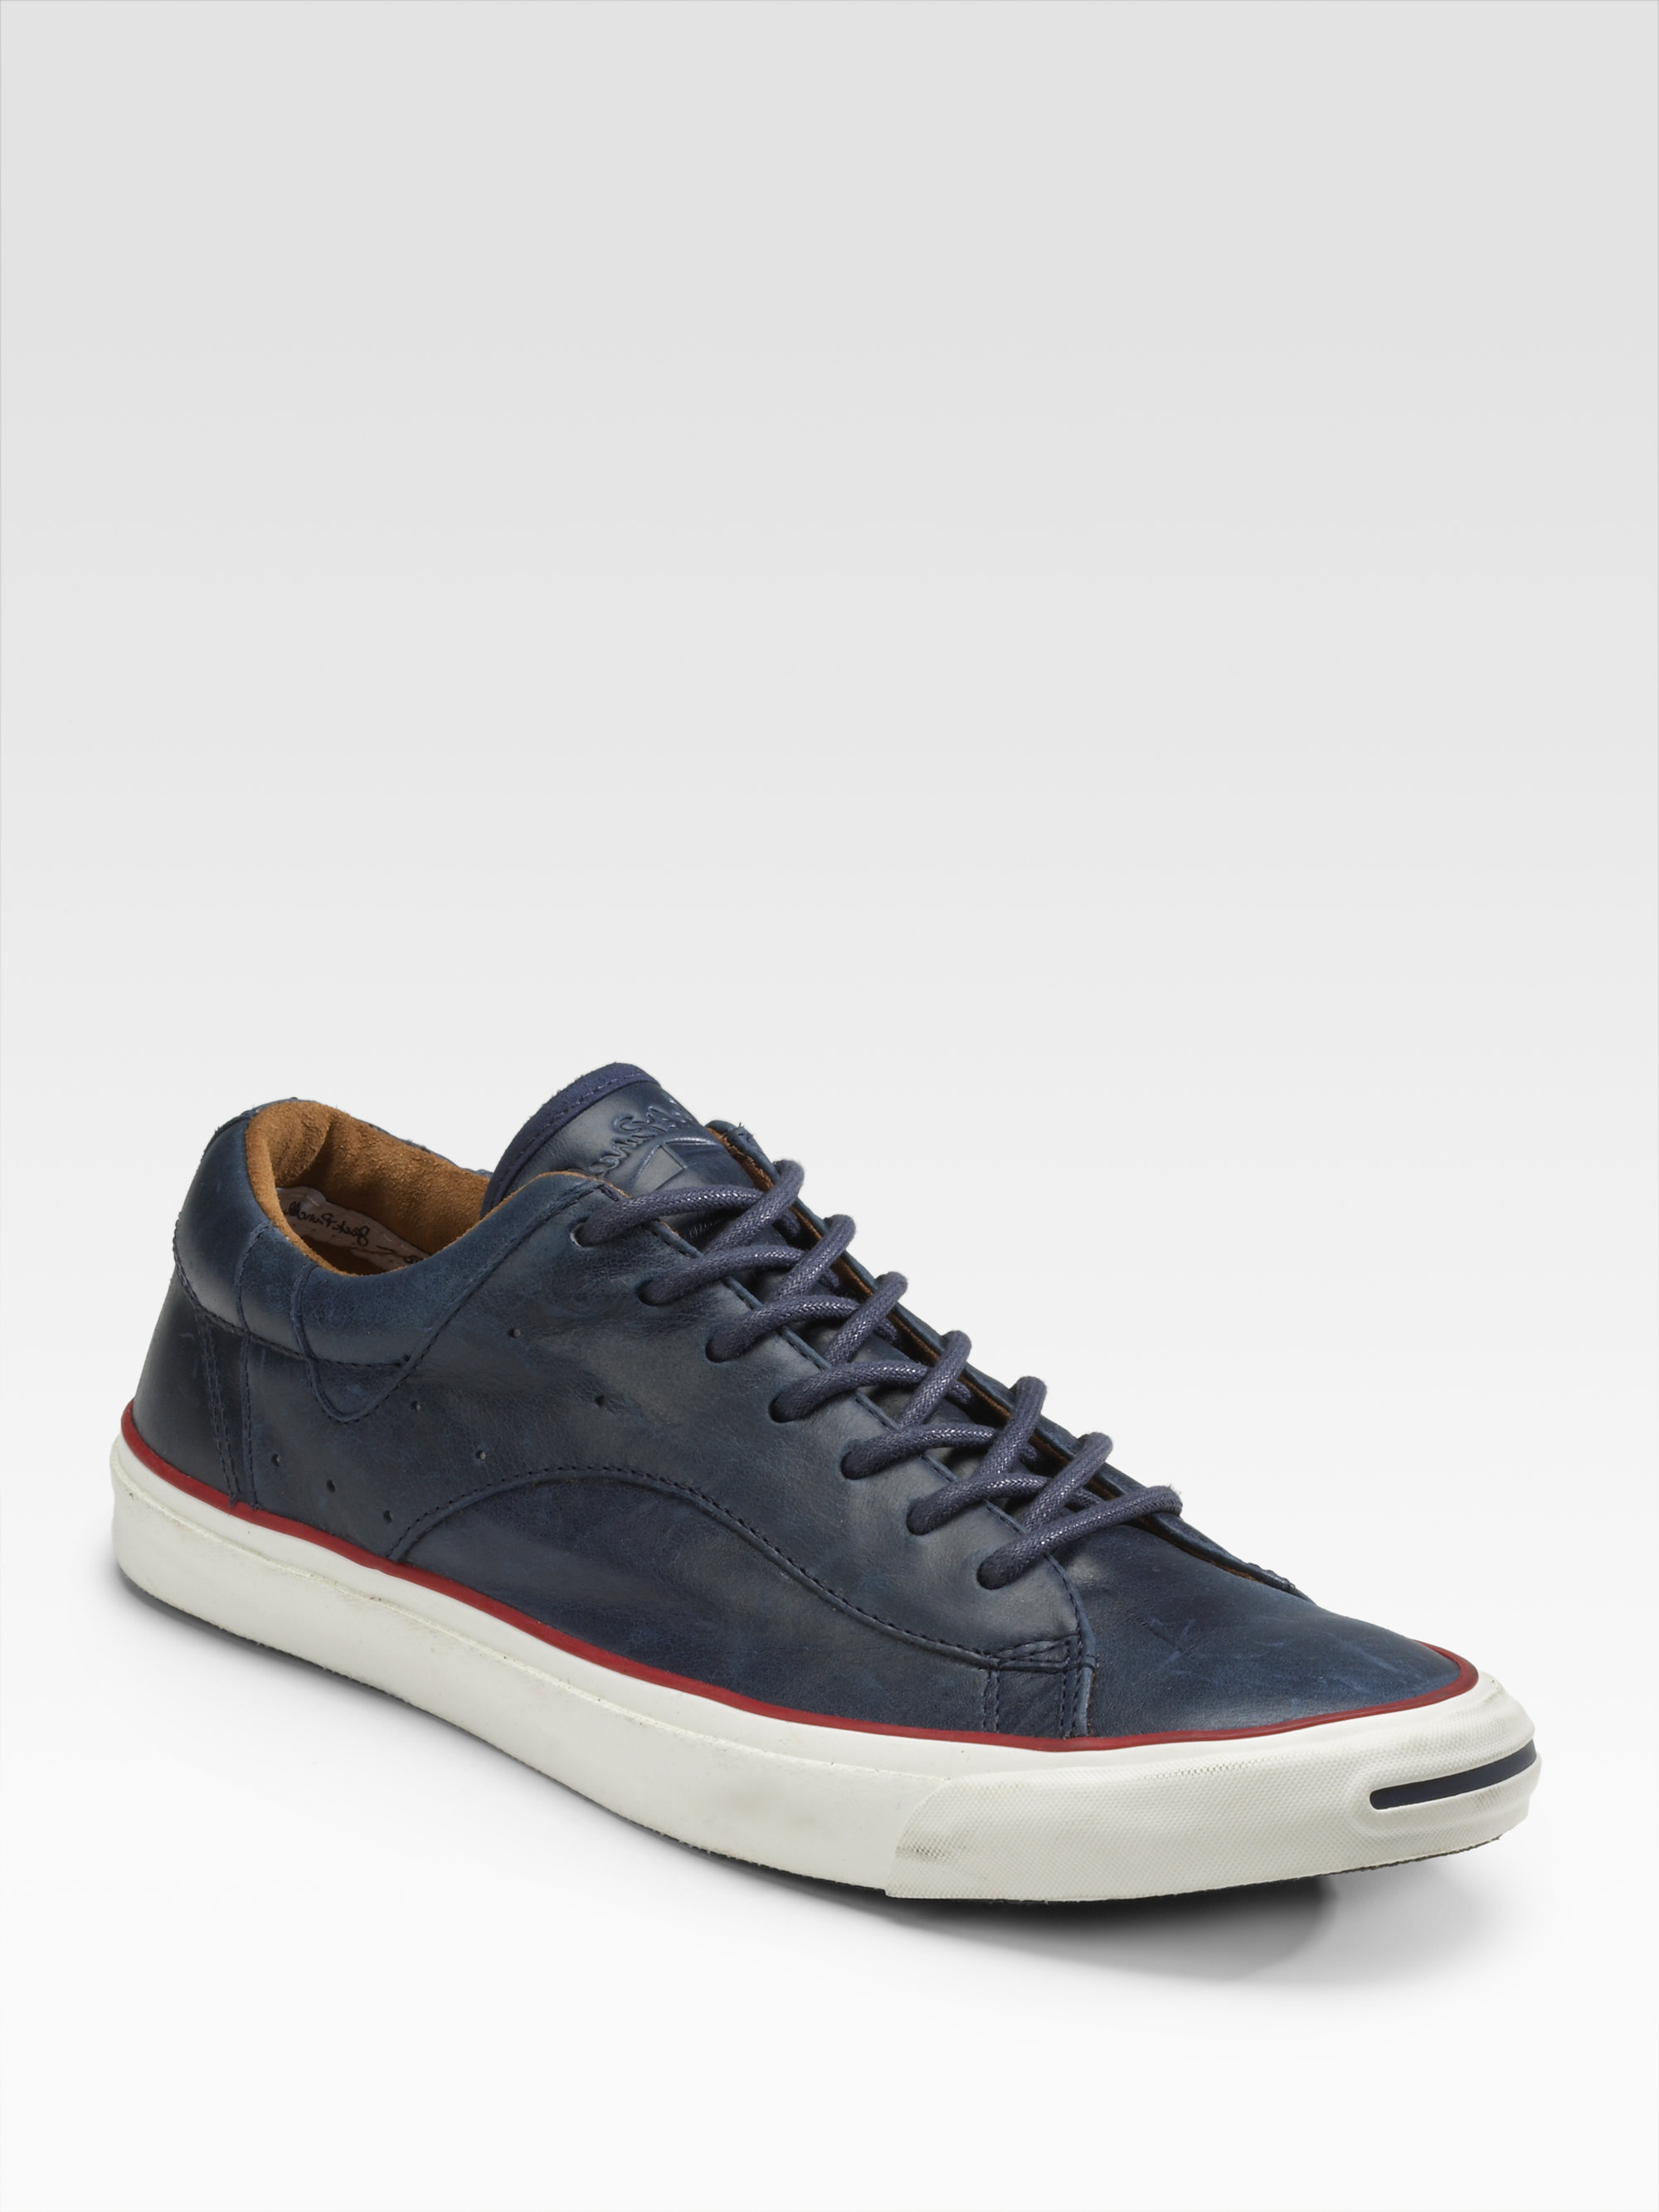 7c3808cfc2dc Lyst - Converse Jack Purcell Racearound Lowtops in Blue for Men